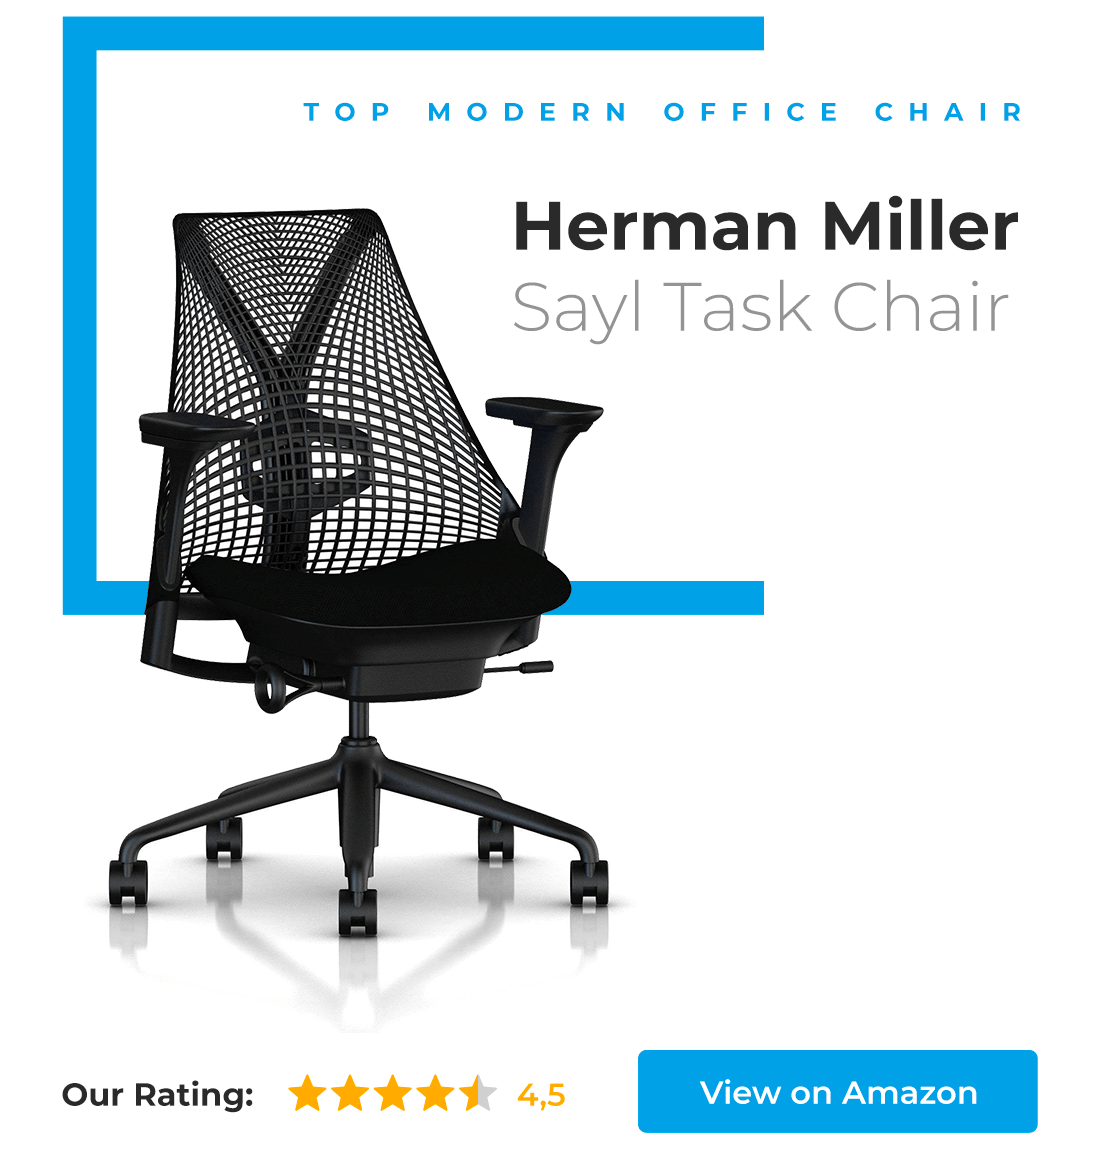 Top Modern Office Chair - Herman Miller Sayl Task Chair.